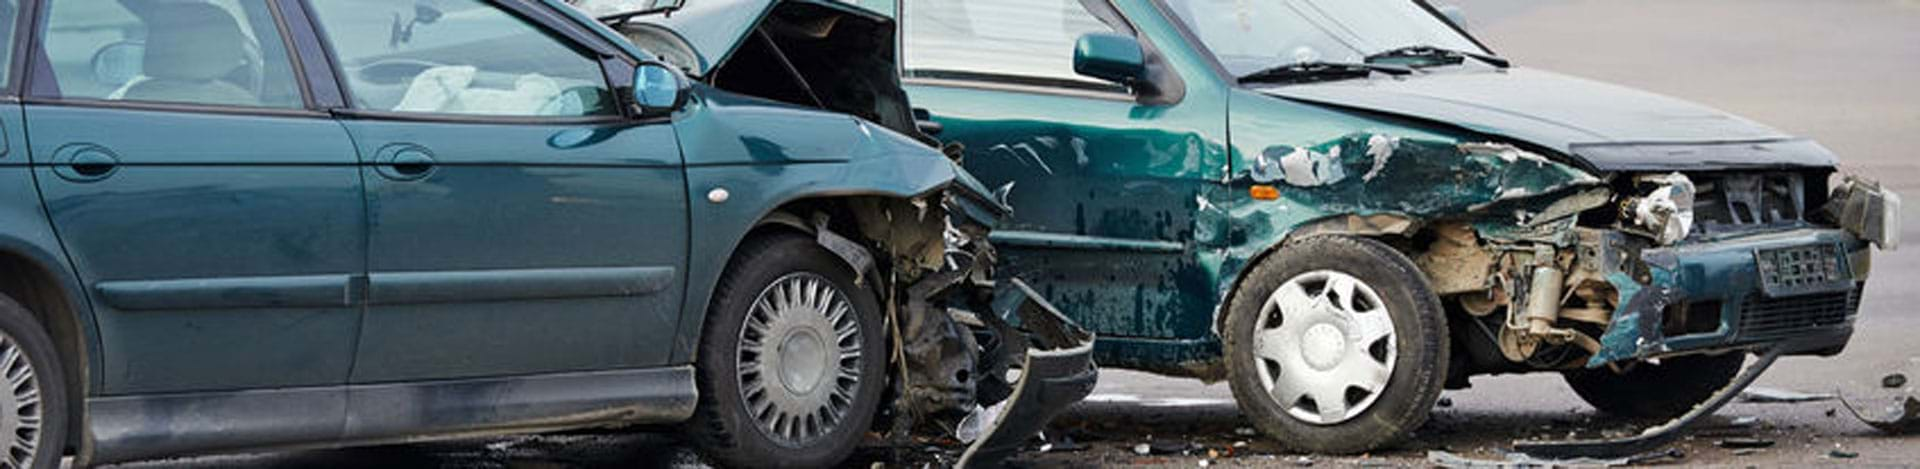 Road Traffic Accident Rta Claims First4lawyers